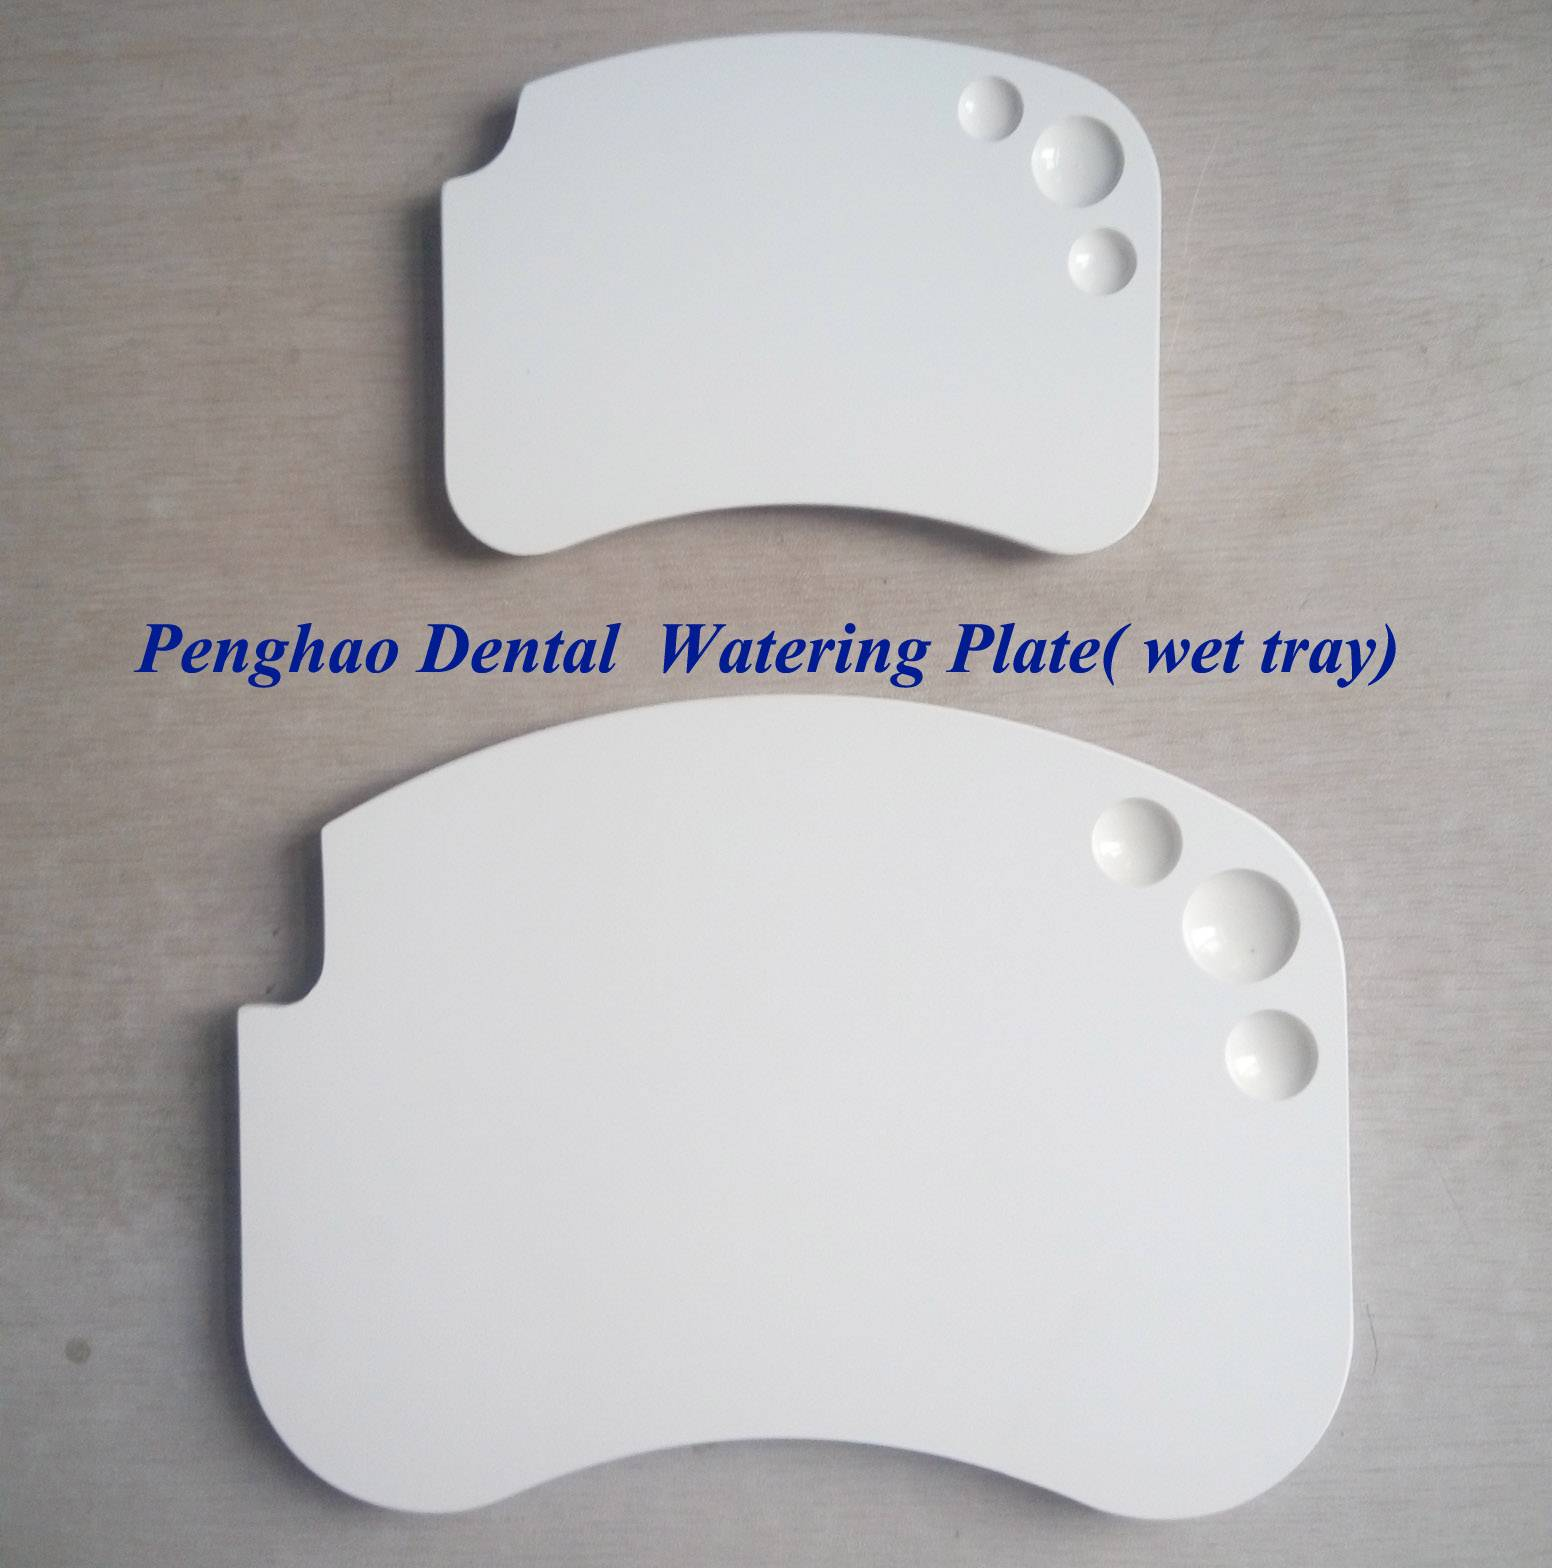 Dental ceramic watering plate( wet tray)